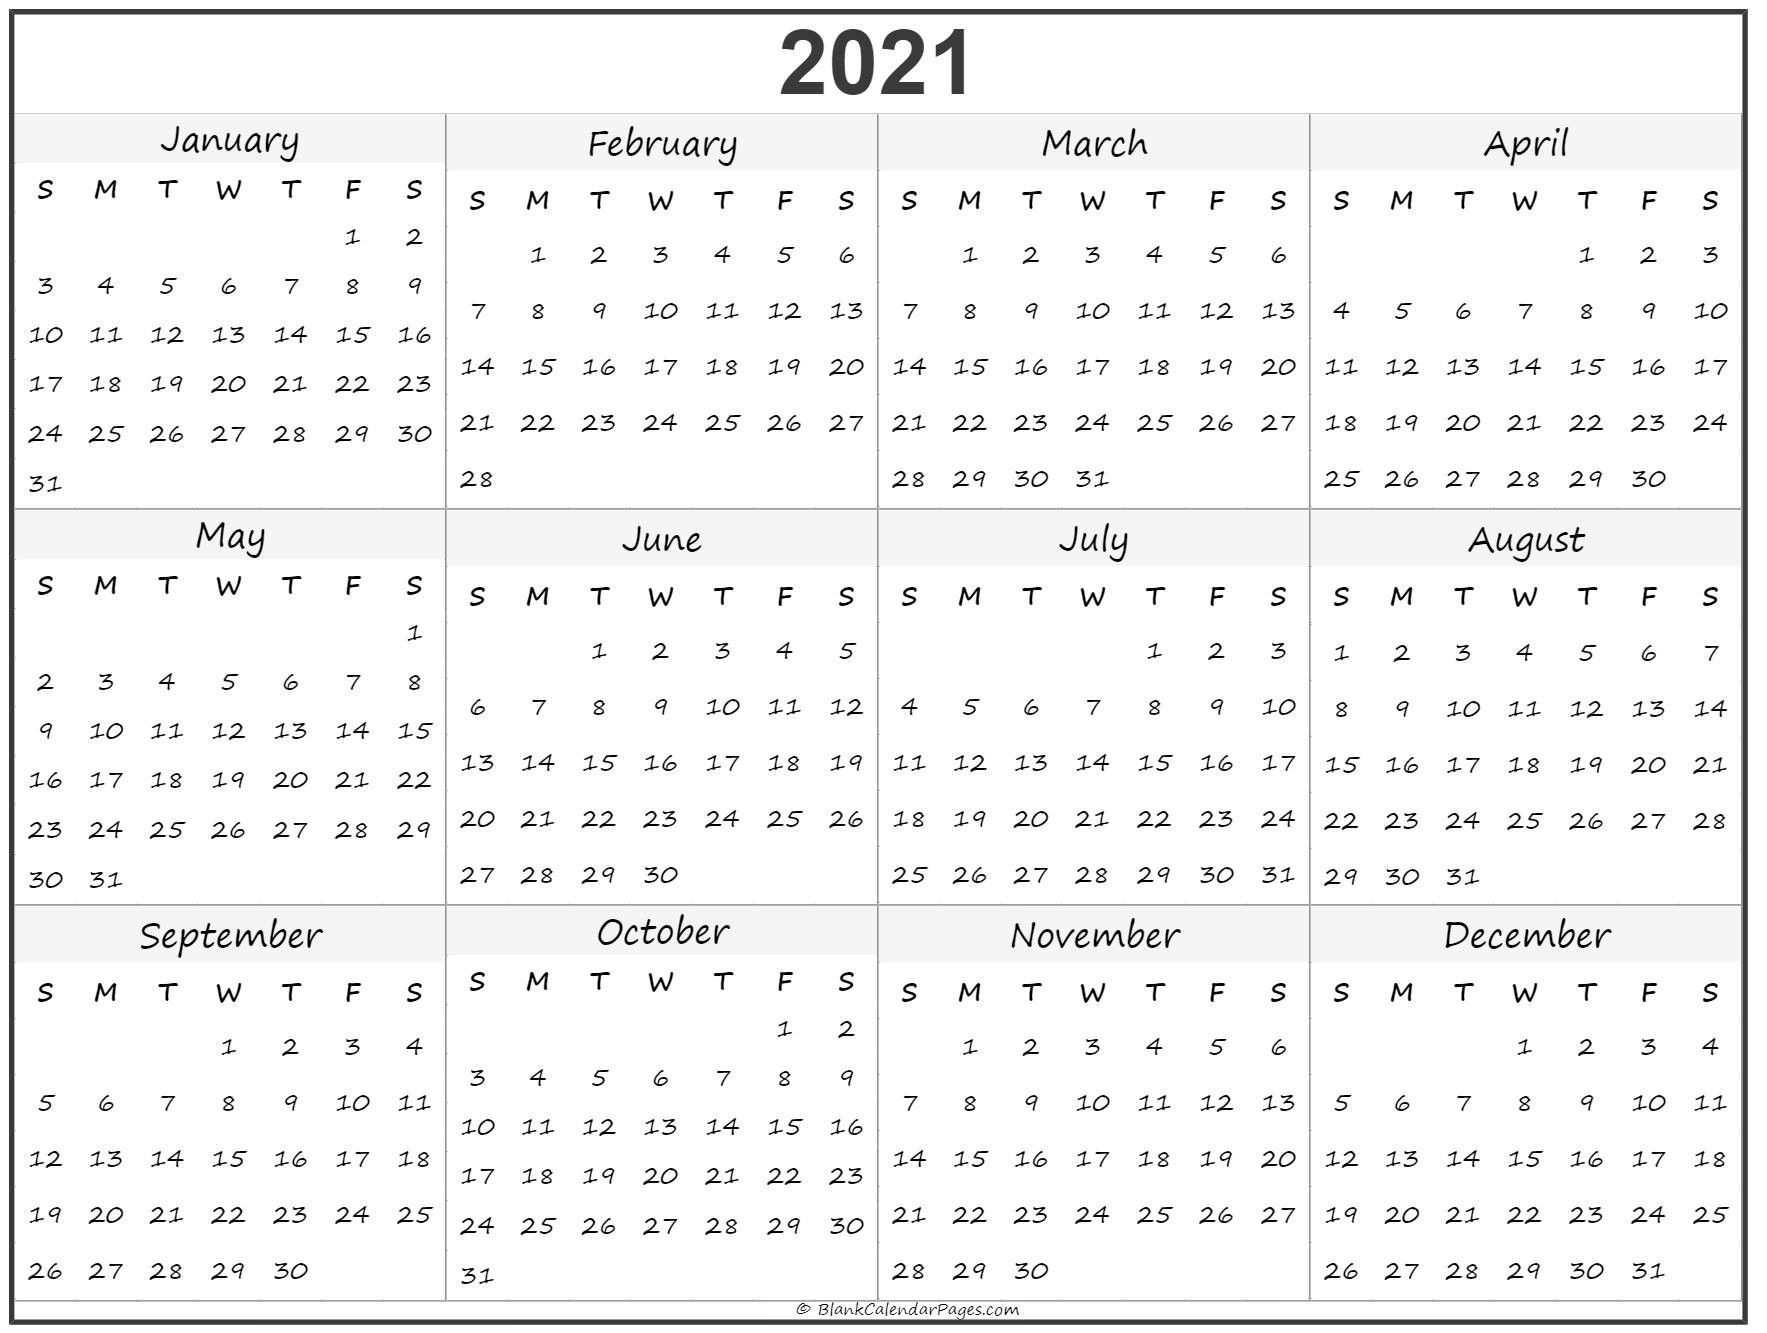 Calendar To Print 2021 Free All Months – Welcome To Our for Calendar 2021 All Months